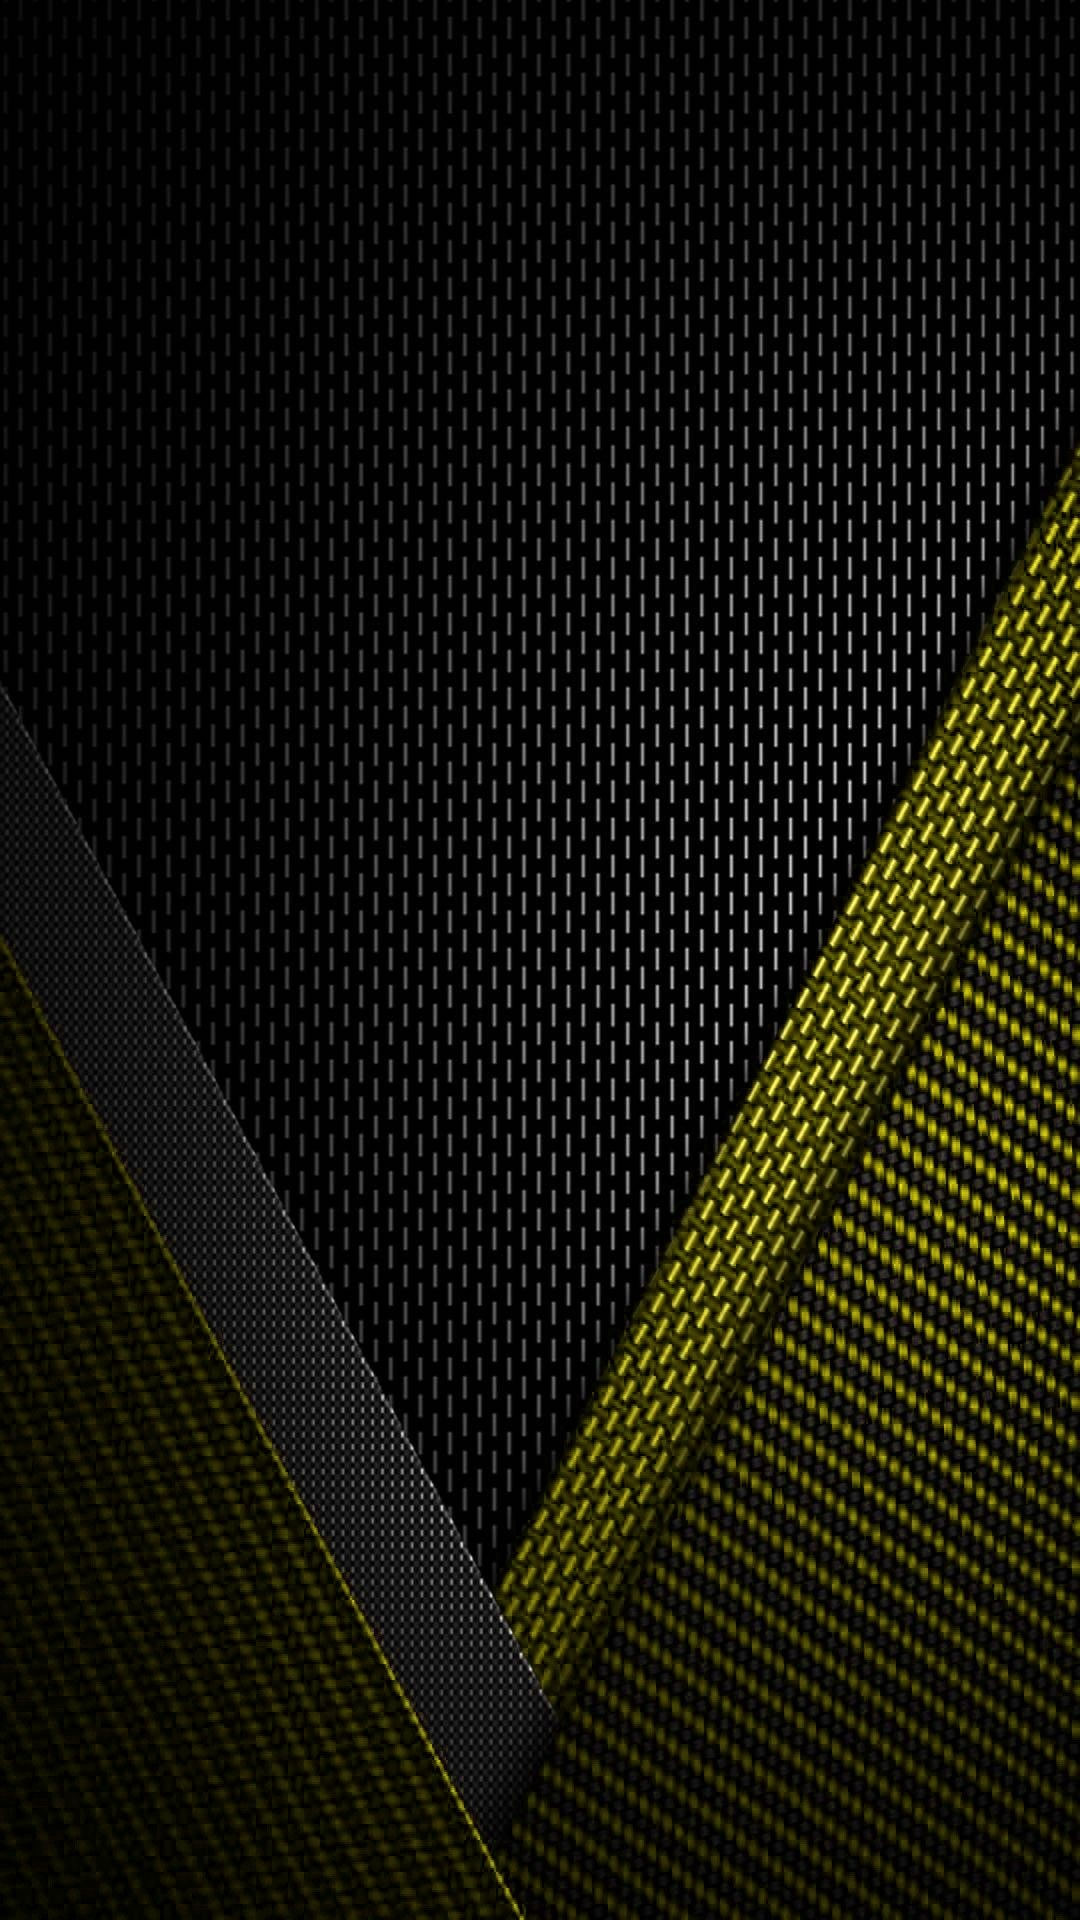 1080x1920 Black and Yellow Textured Wallpaper